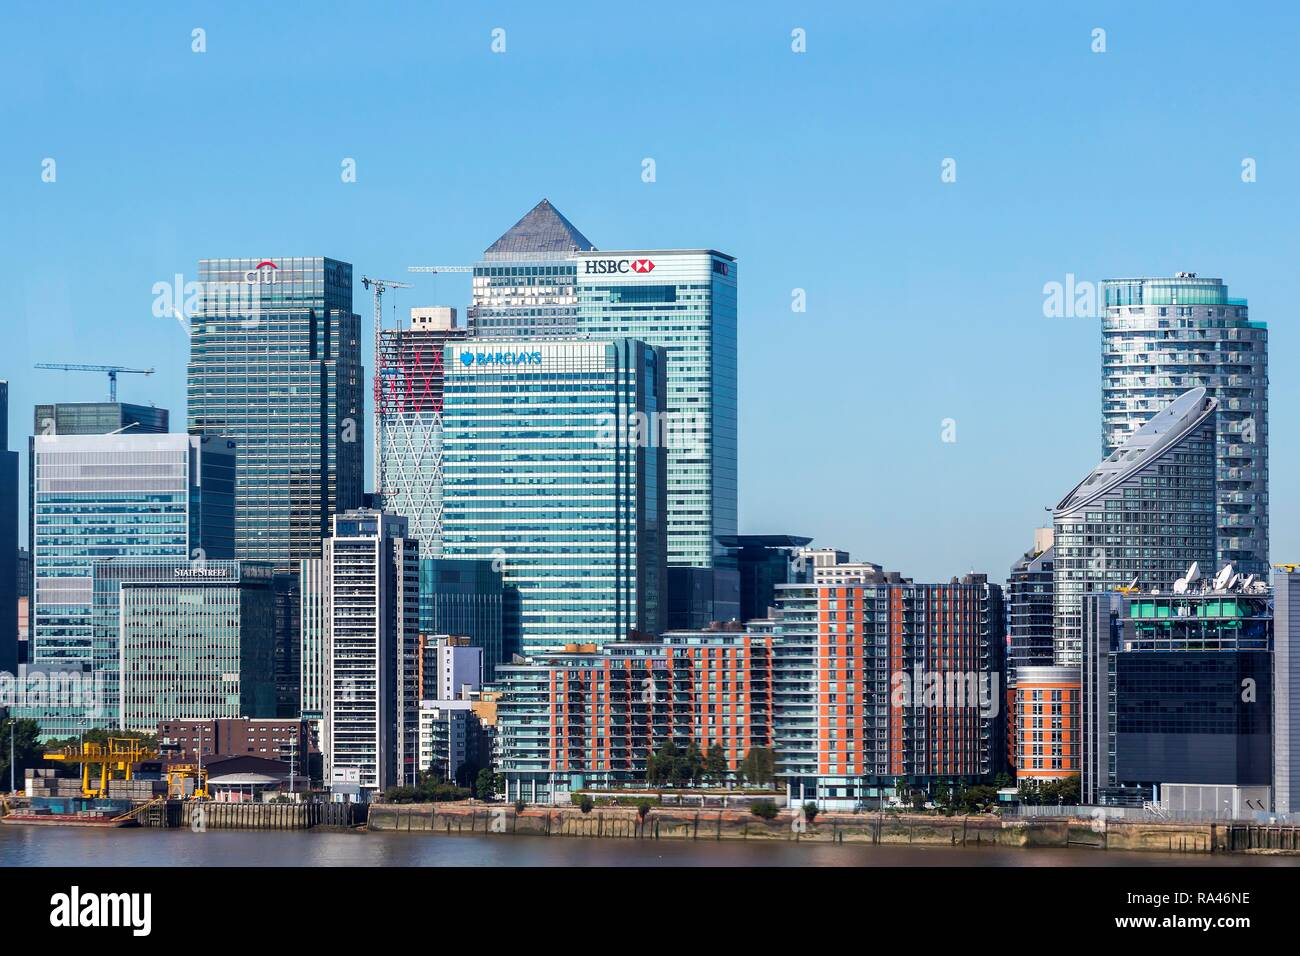 Canary Wharf, Financial District, Banking District, Financial Centre, London, United Kingdom - Stock Image